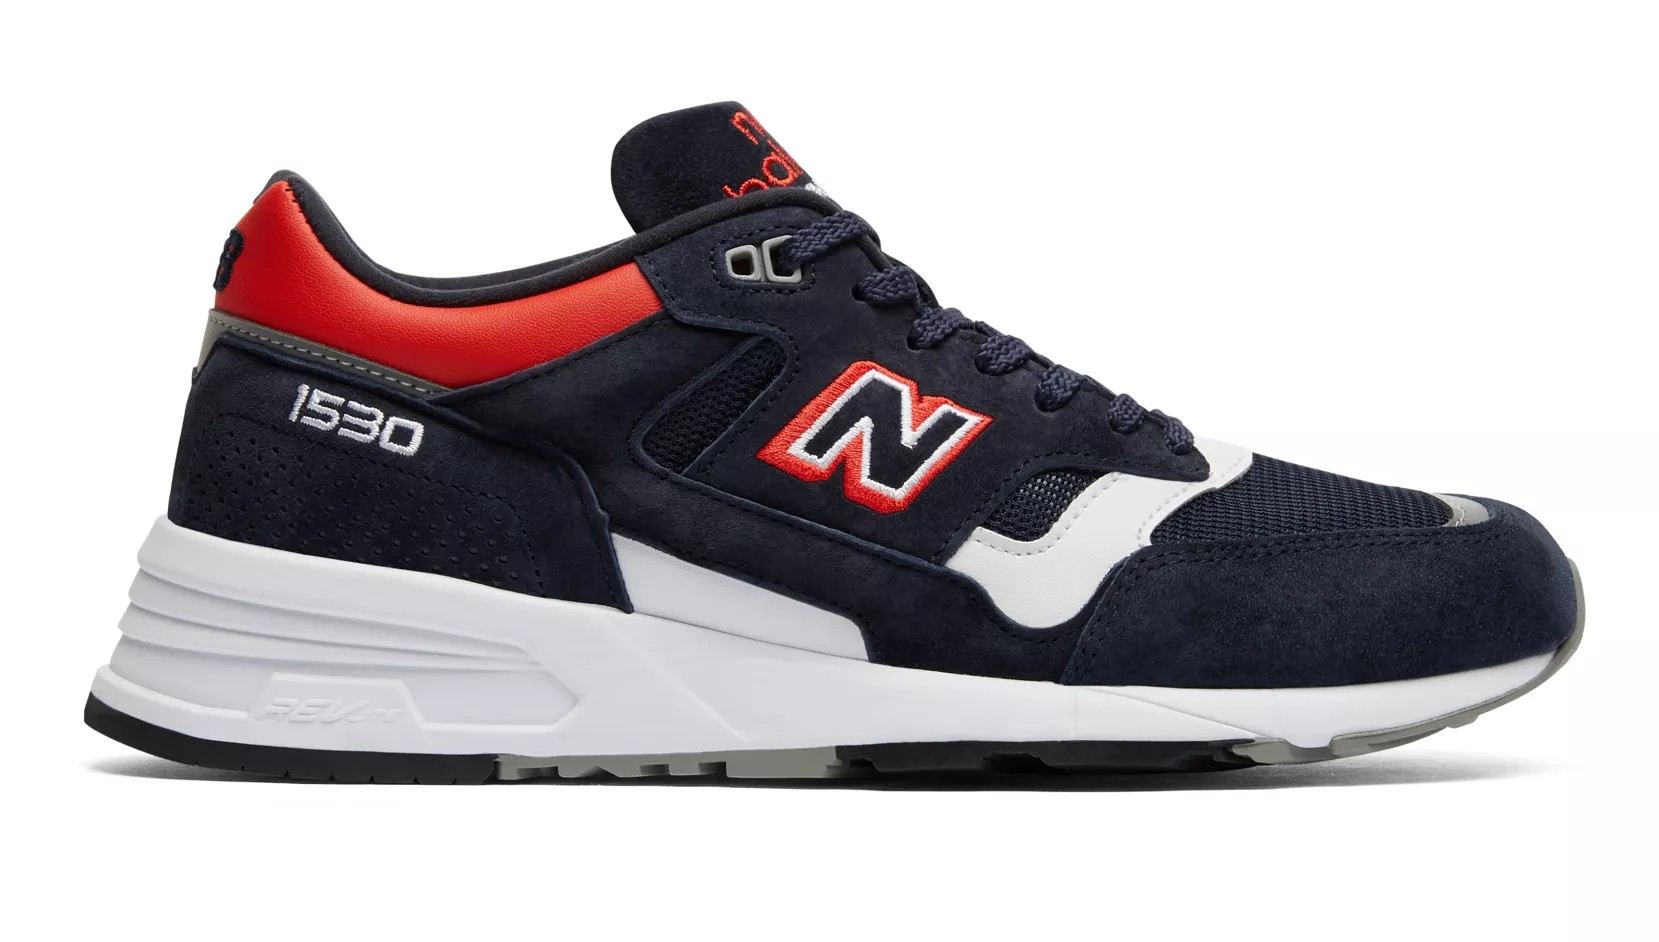 New Balance 1530 Made in UK NB Athletics